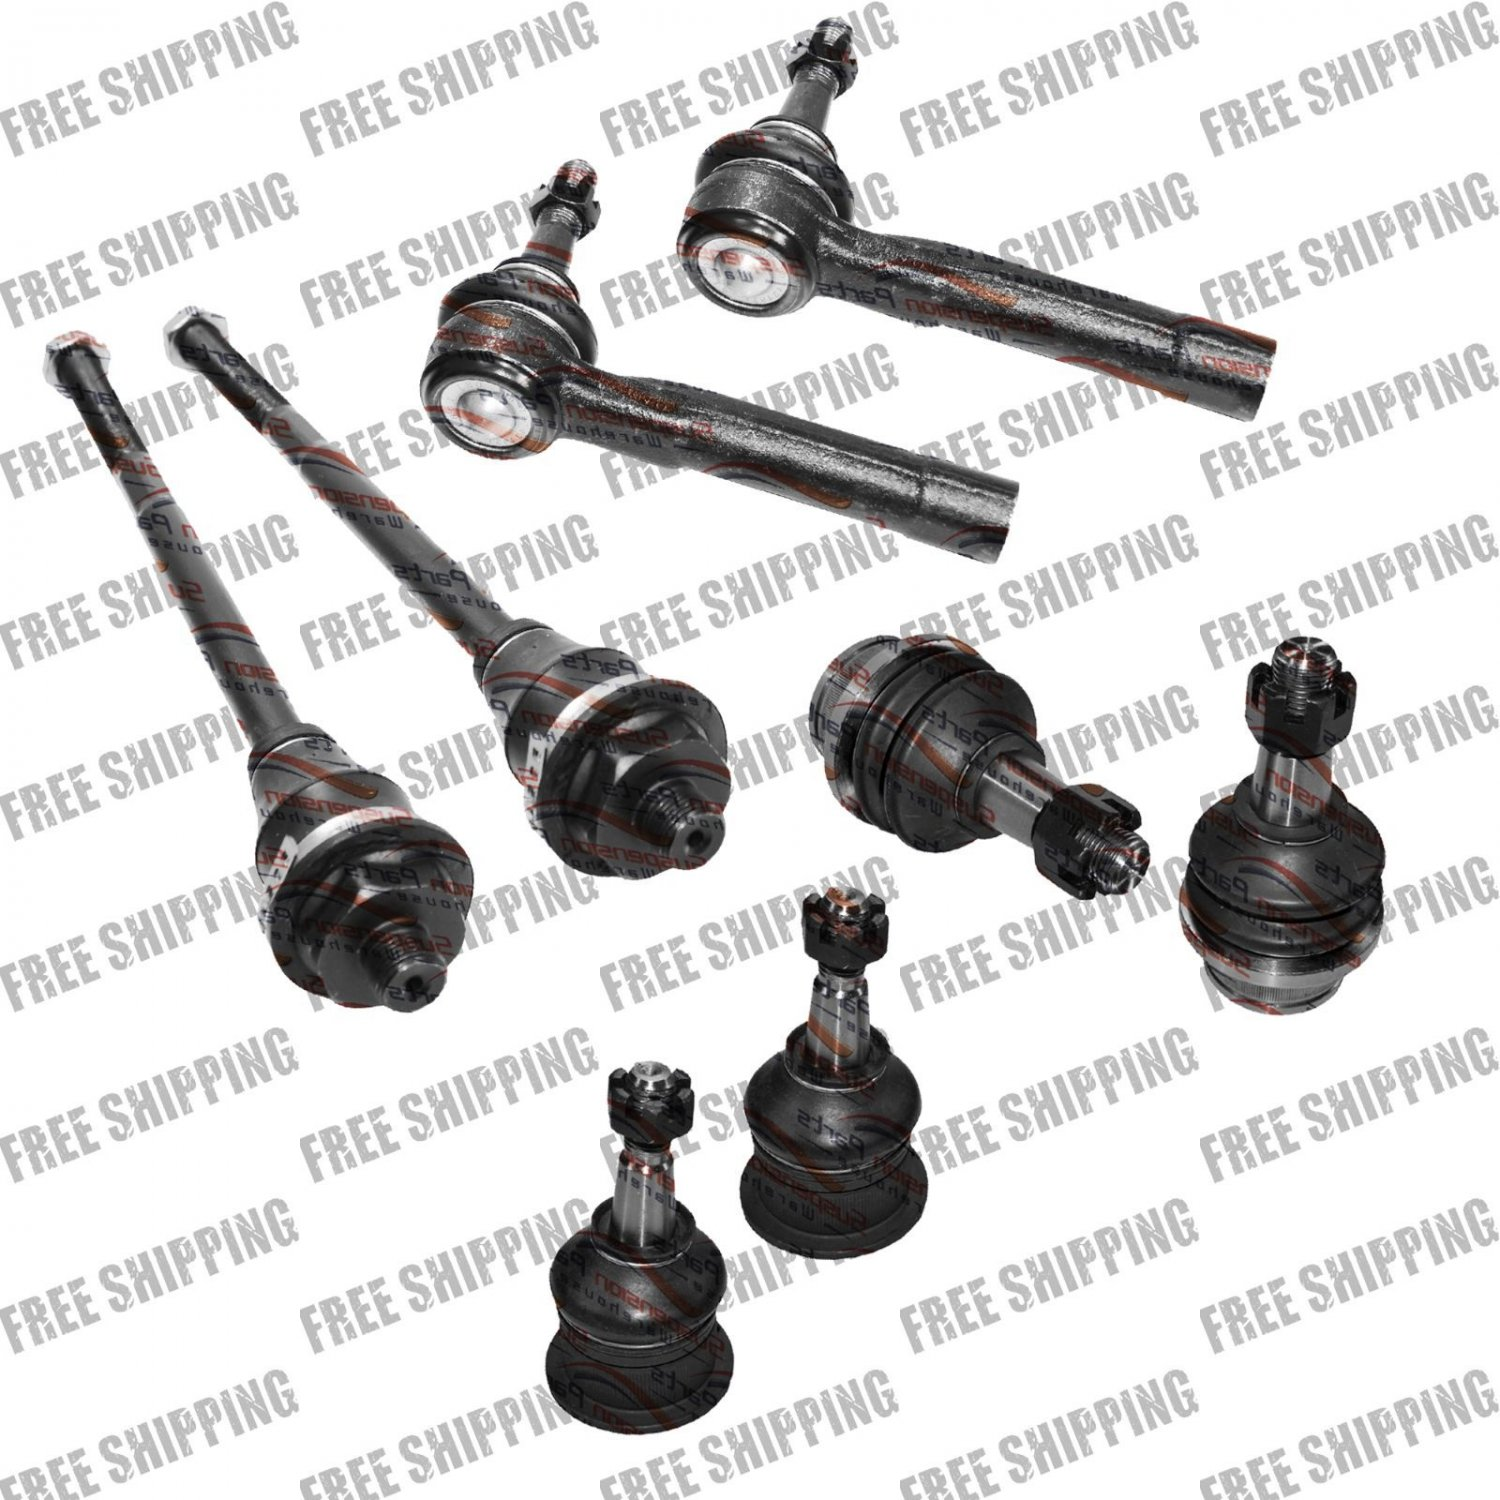 2003,04,05,06,07 Suspension Chassis Kit Ball Joints Tie Rod End For HUMMER H2